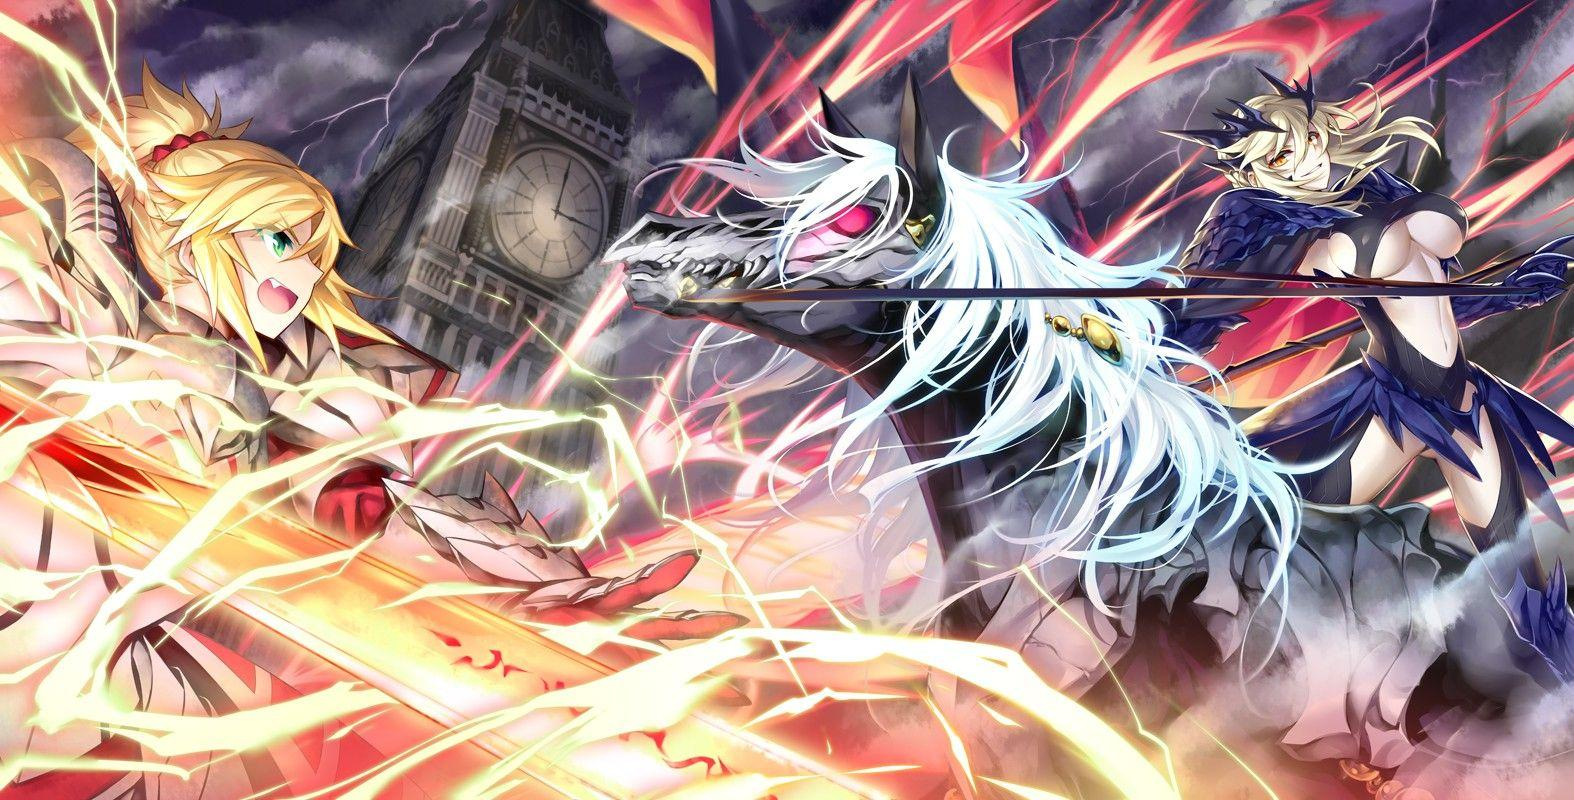 Wallpapers : anime, horse, sword, Saber, Fate Grand Order, Fate